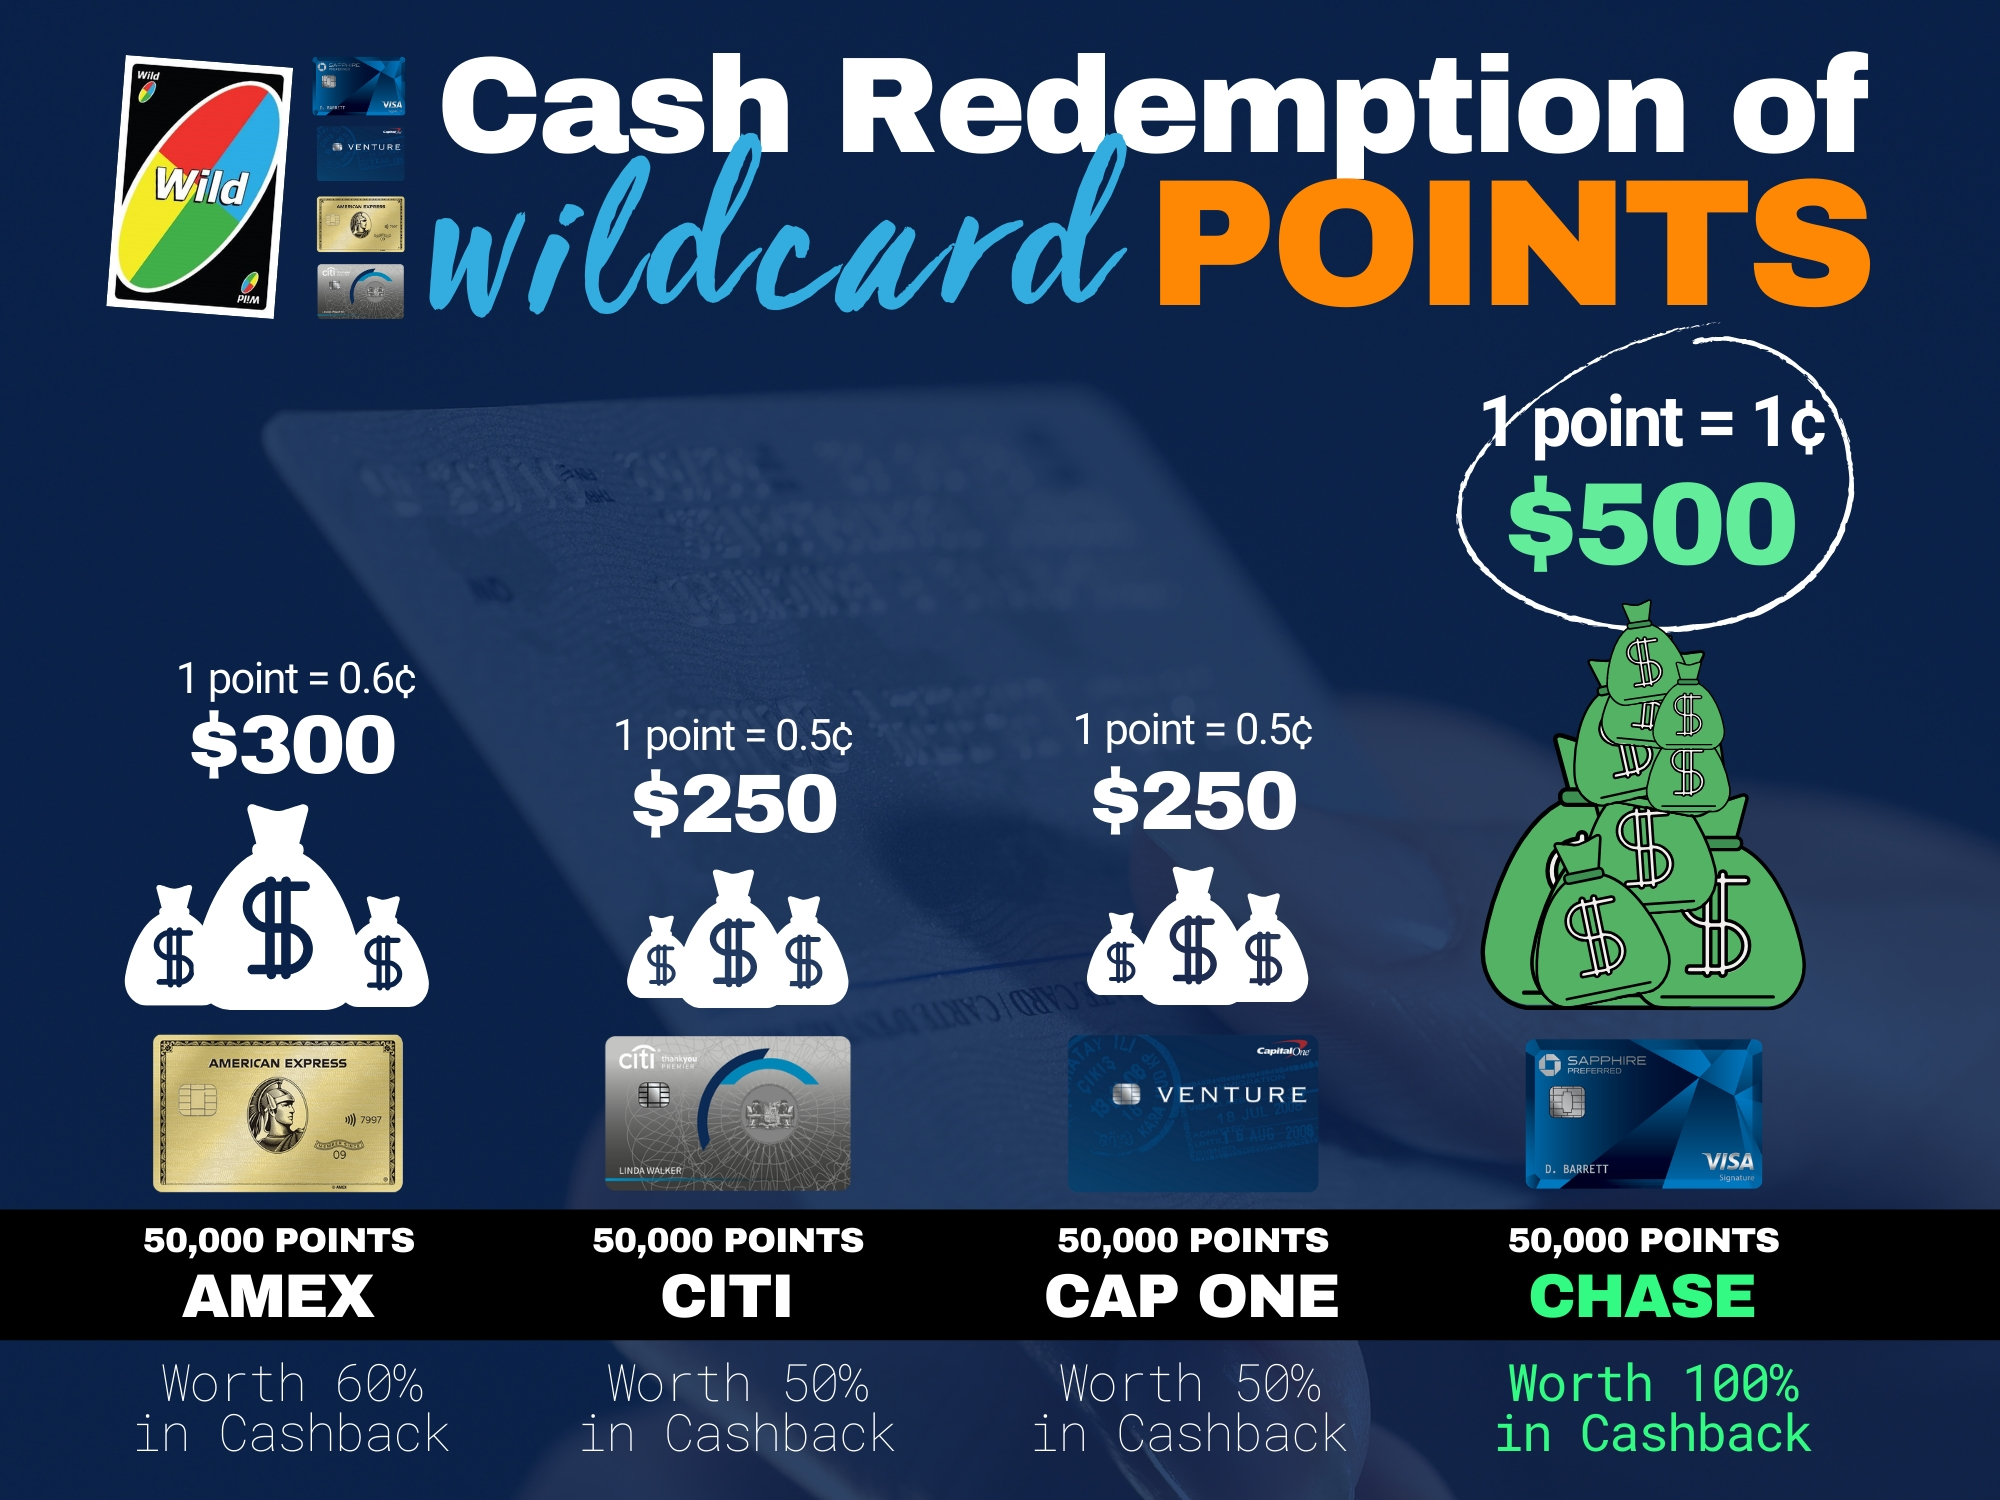 Cash Back Redemption for Chase Ultimate Rewards